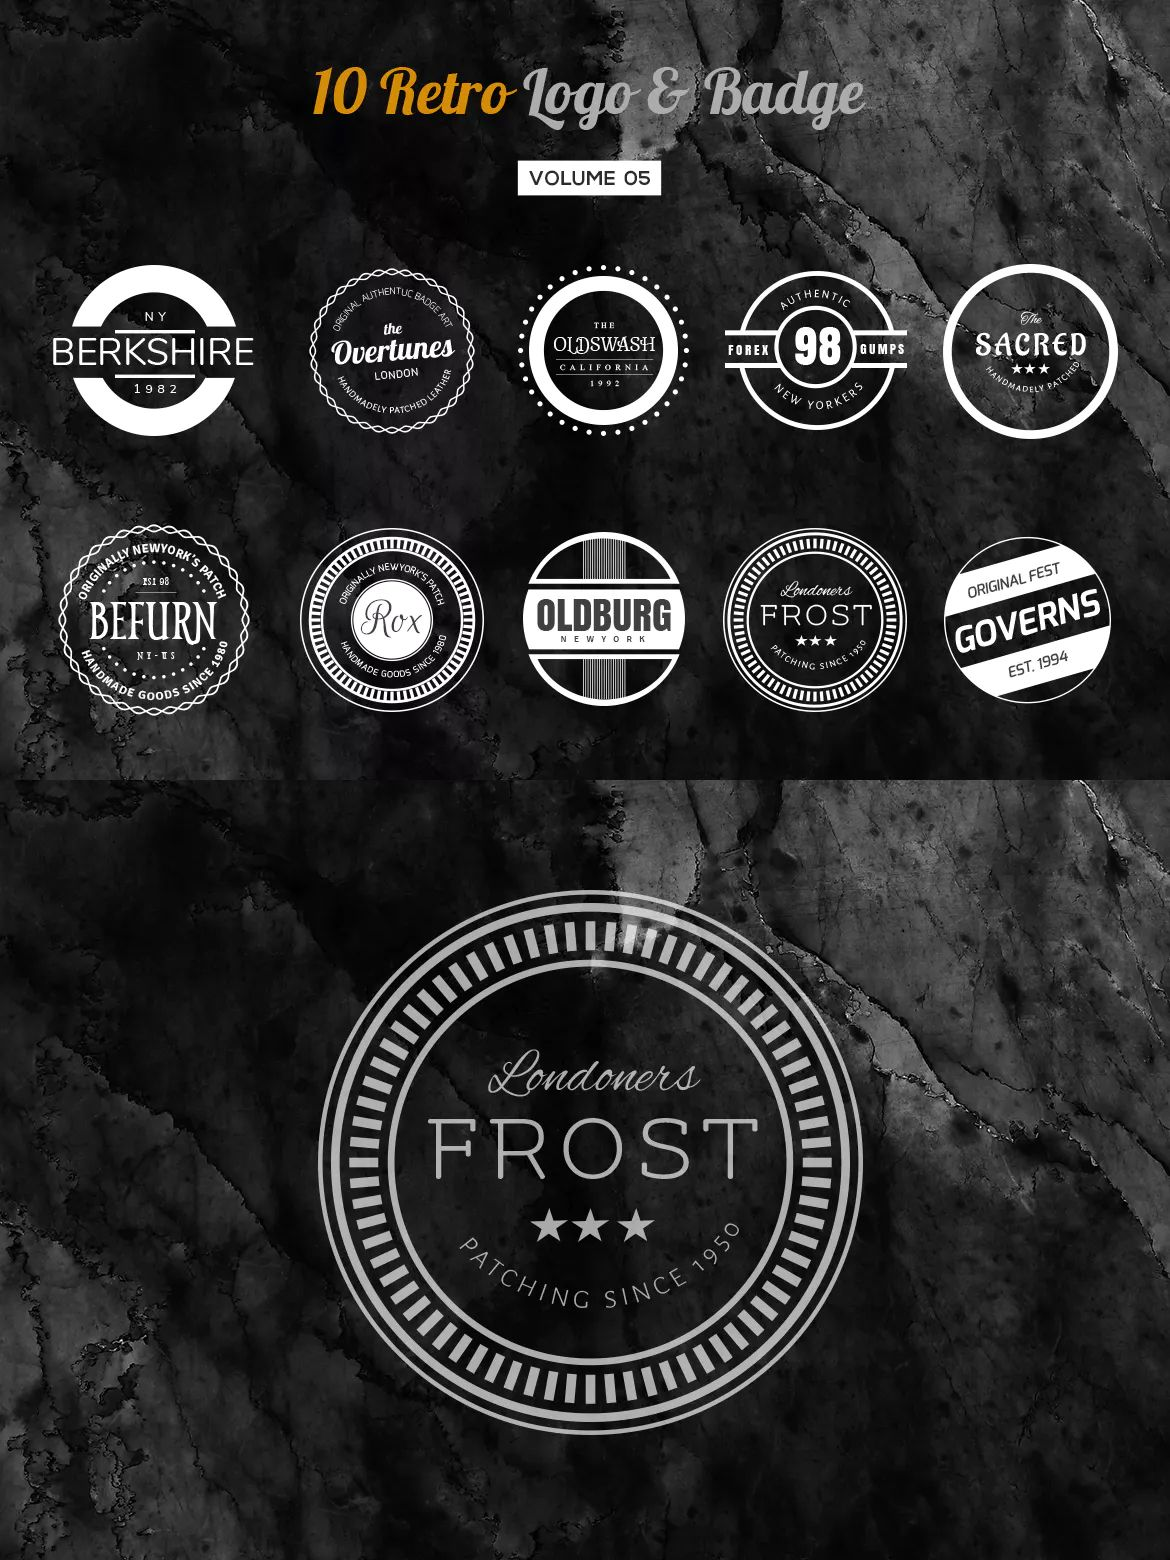 10 retro logo & badge template ai, eps, psd | badges - sticker